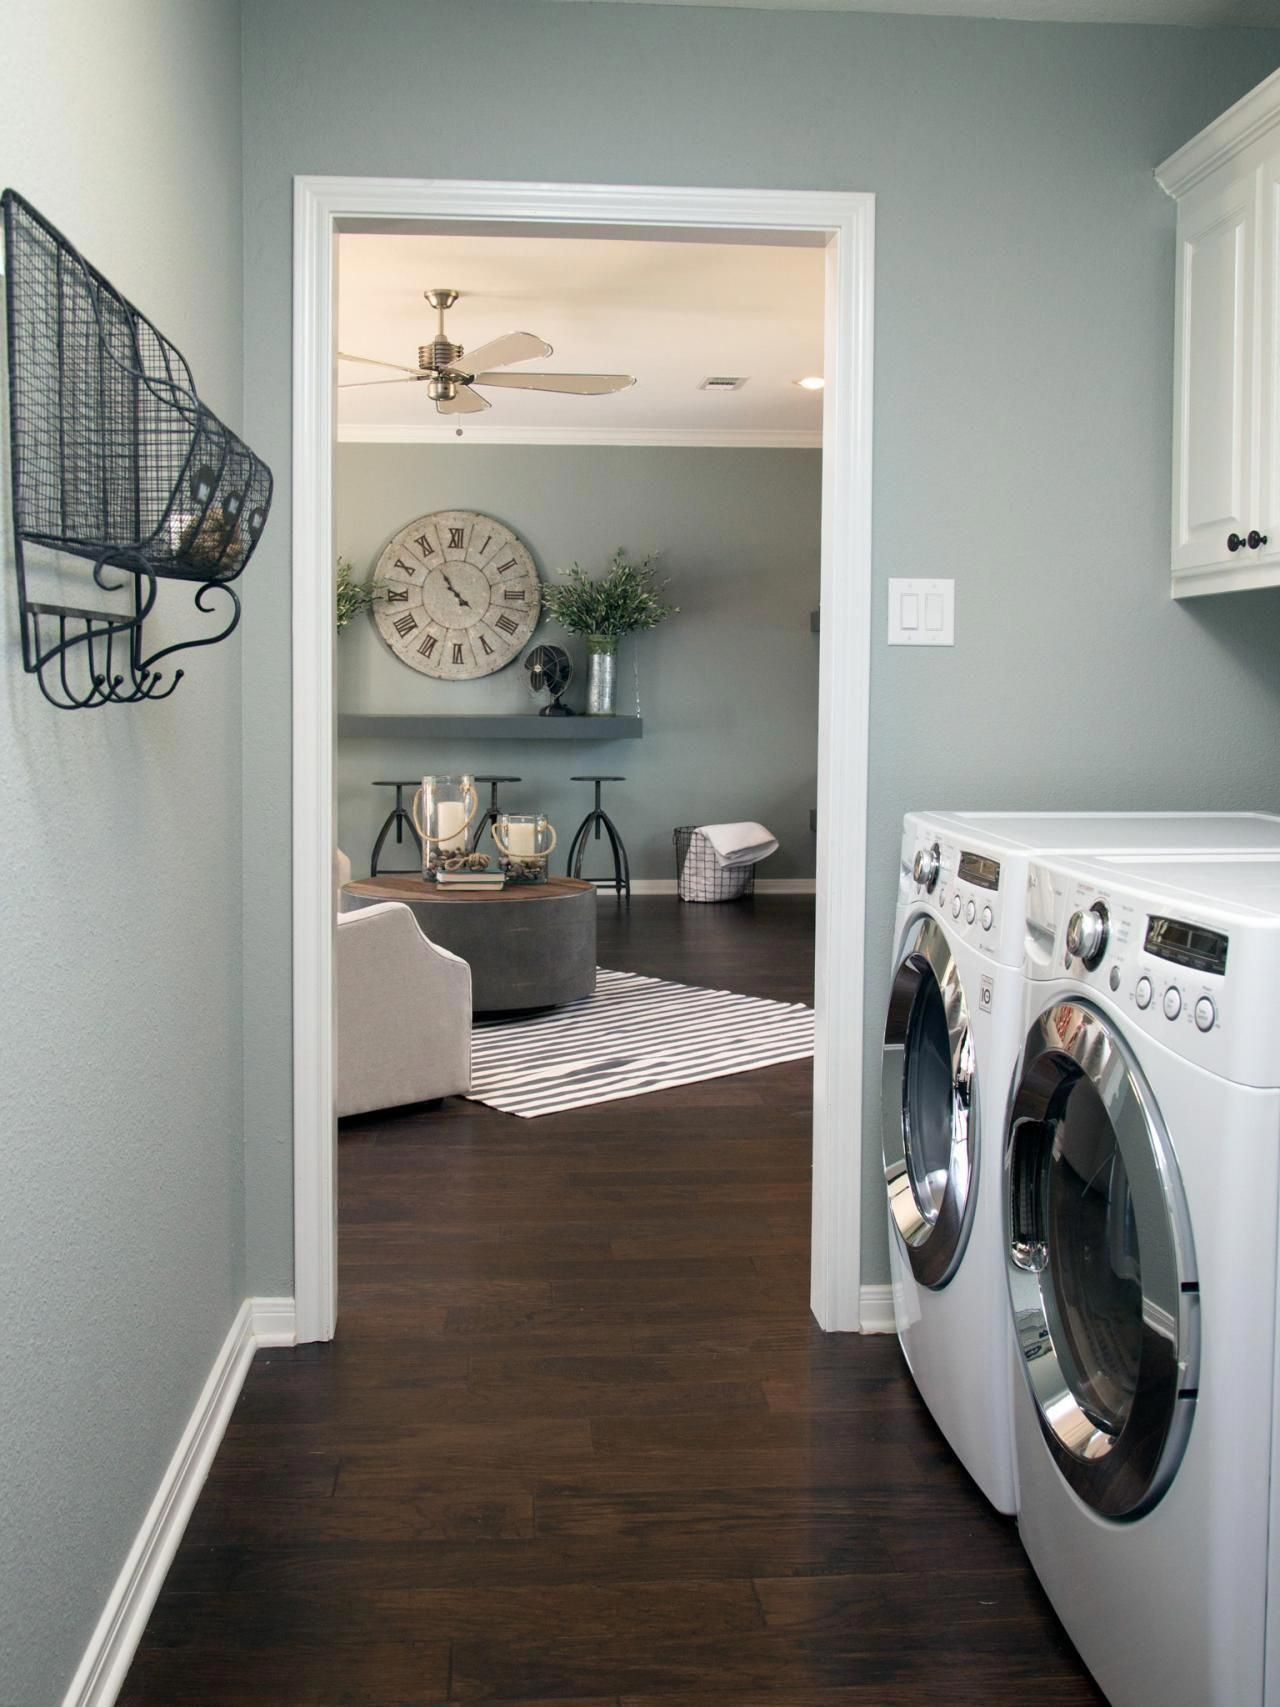 My Laundry Room After Pic Laundry Room Painting Cabinets Accent Wallpaper